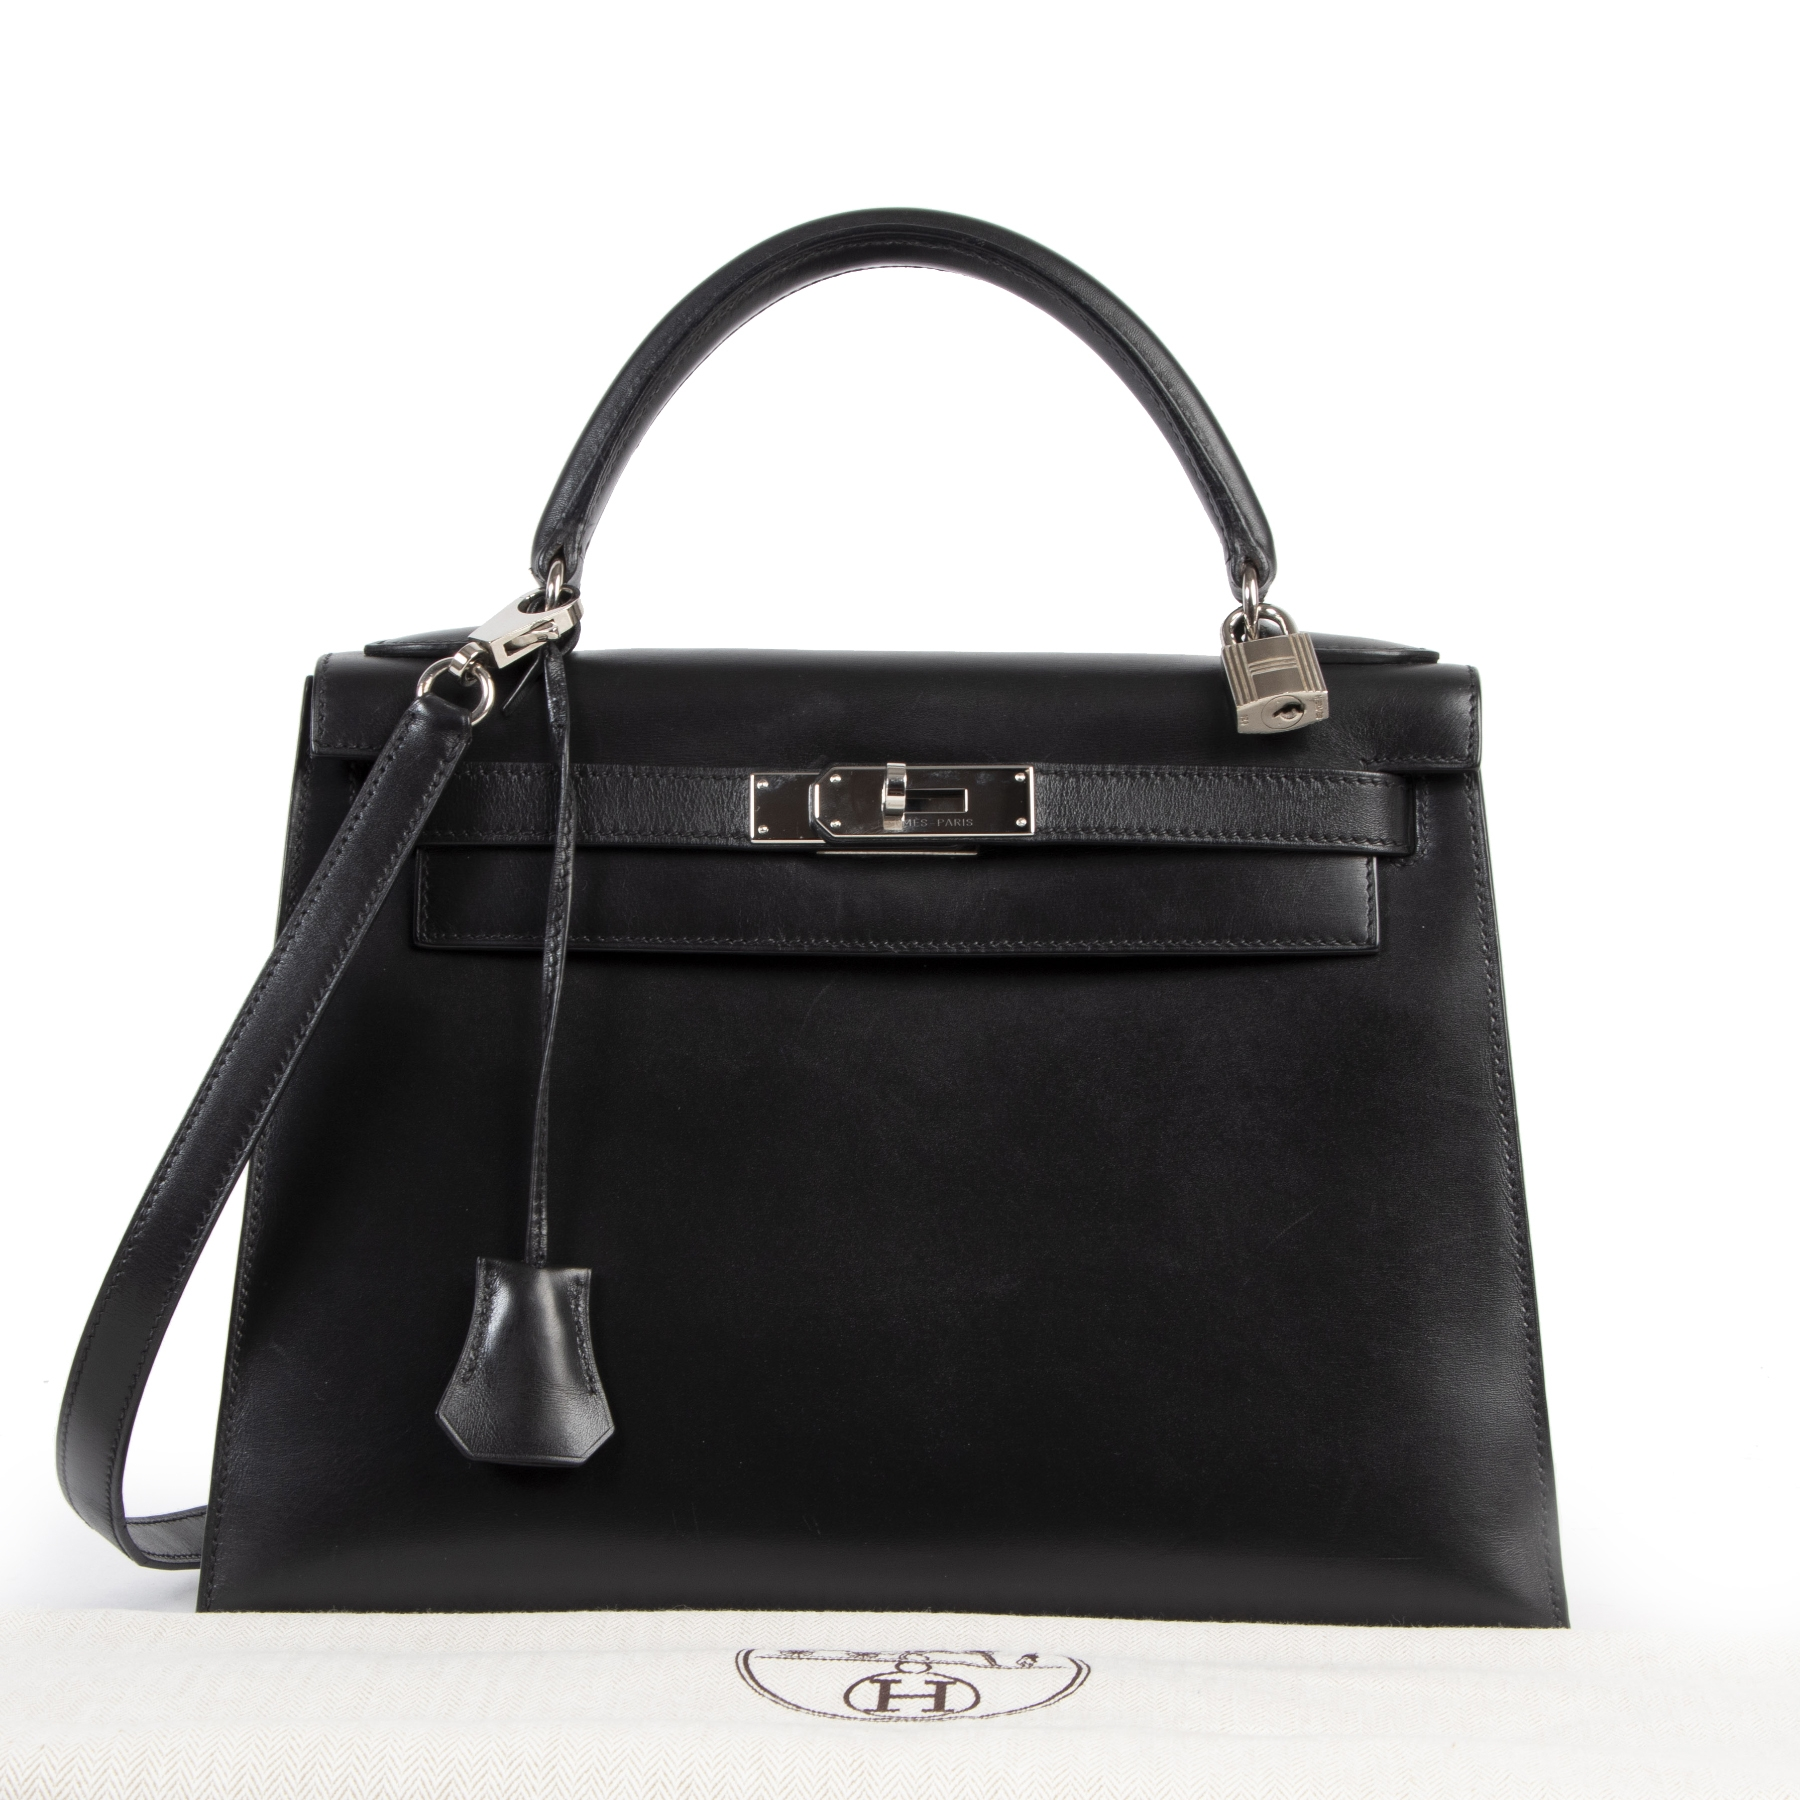 Authentic secondhand Hermes Kelly 28 Black Boxcalf + Strap designer bags fashion luxury vintage webshop safe secure online shopping high end brands